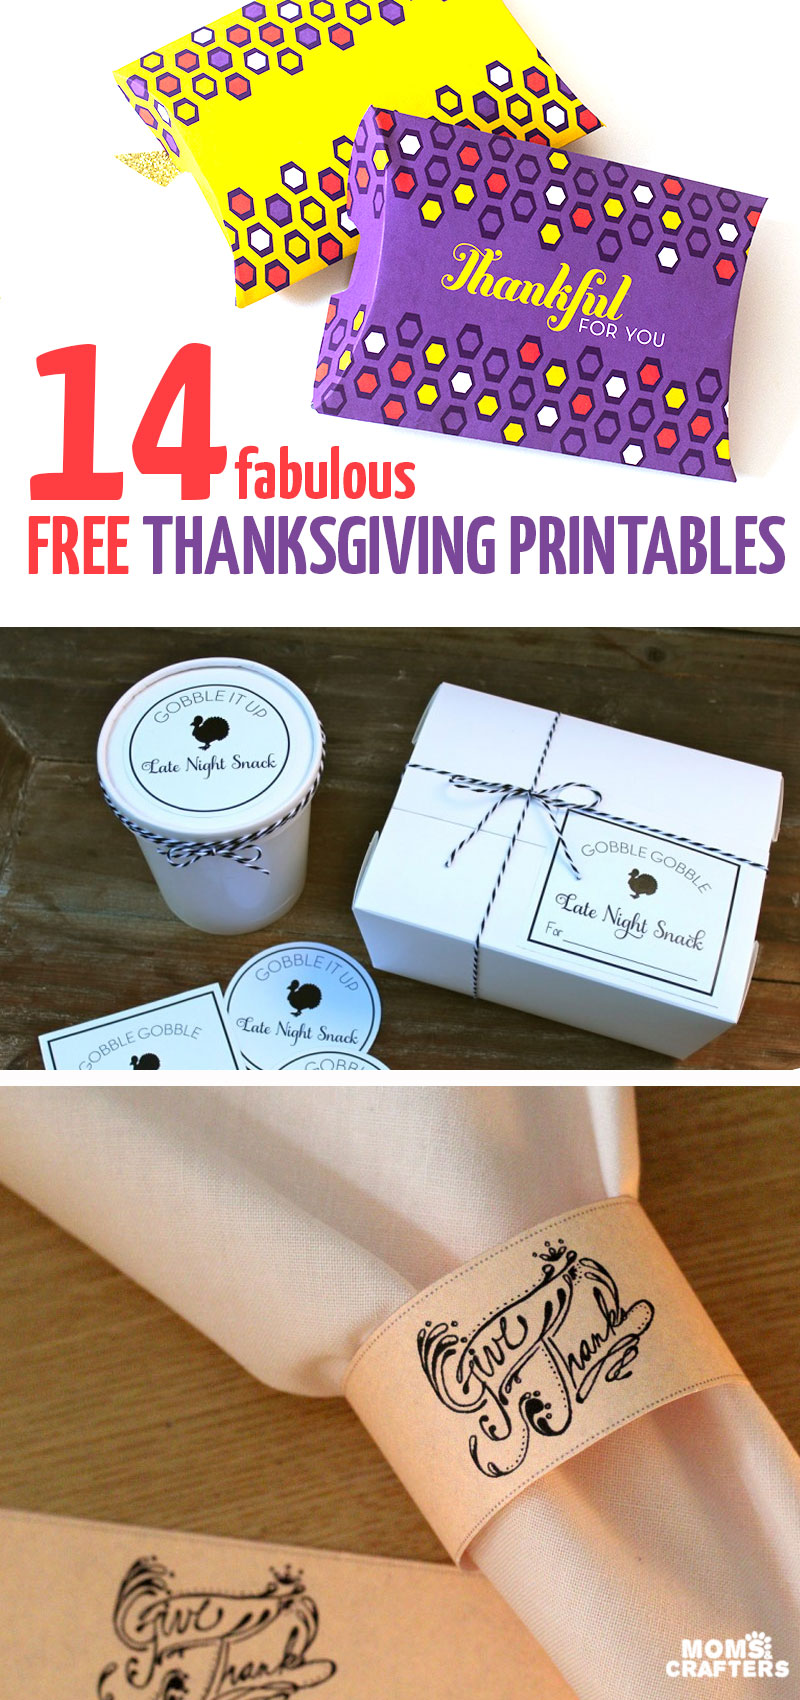 Click for 14 super cool free Thanksgiving printables, including some home decor and wall art, leftover packages, treat boxes, kids activities, table decor, and more!